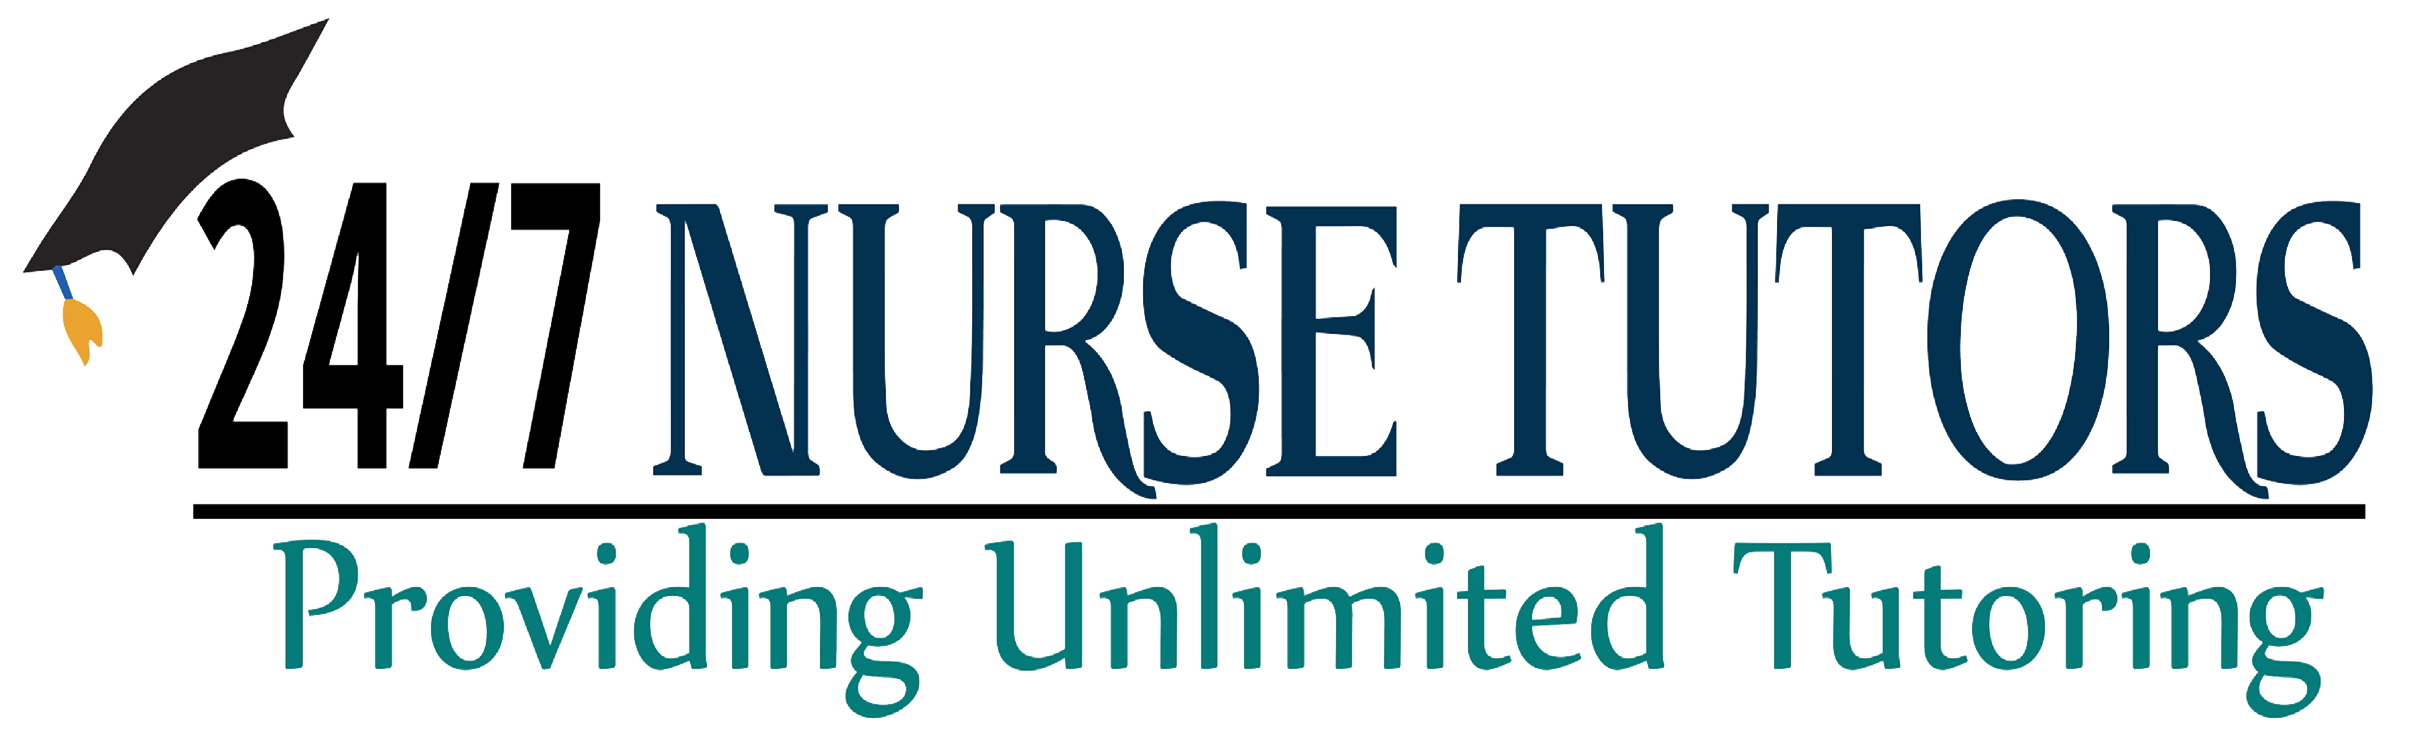 247NurseTutors - #1 Test Prep for NCLEX, HESI, ATI, KAPLAN